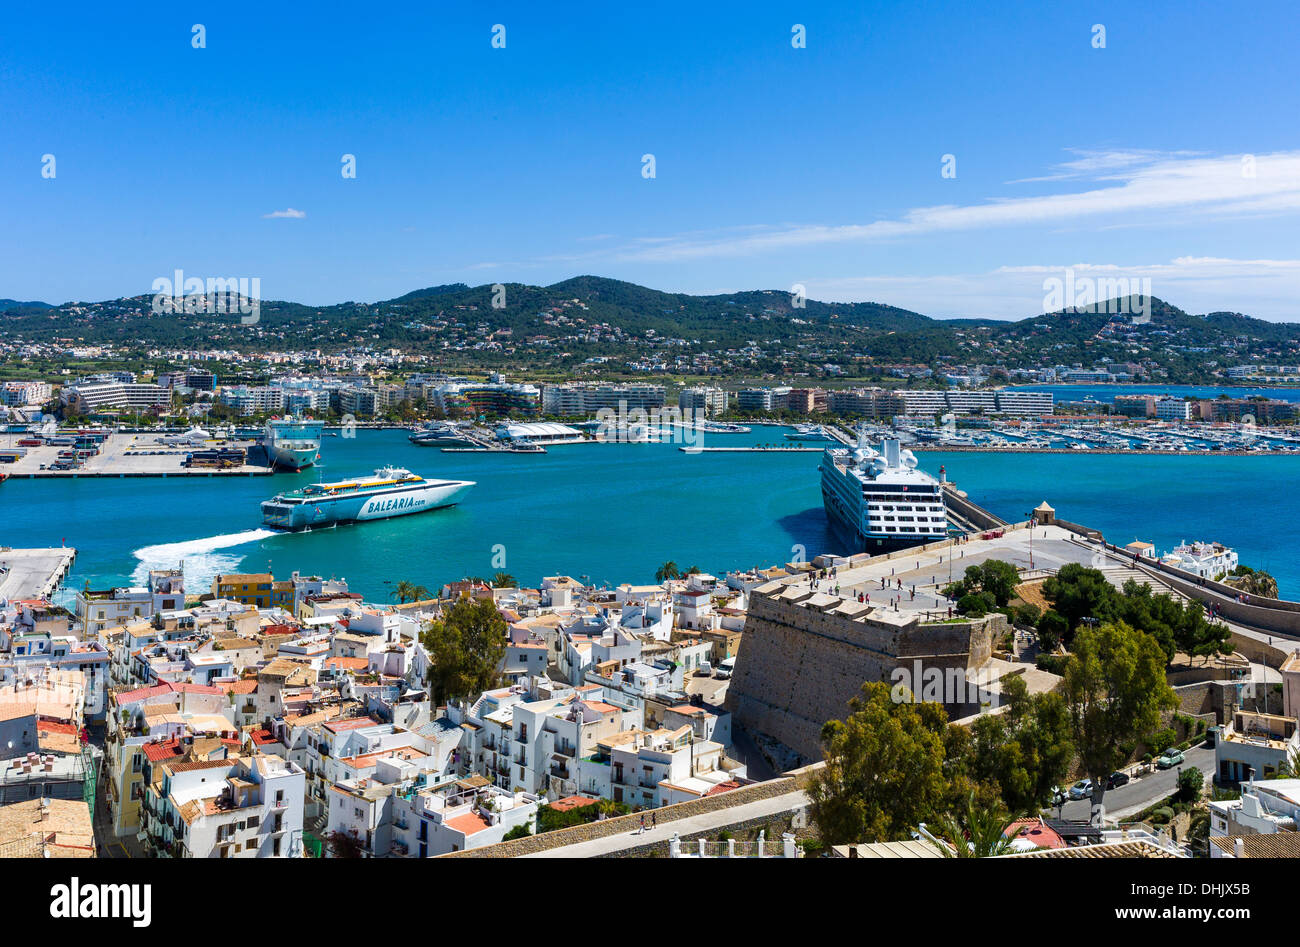 Europe, Spain, Balearic islands Eivissa, Ibiza panorama of the harbor seen from the old town Dalt Vila ramparts - Stock Image